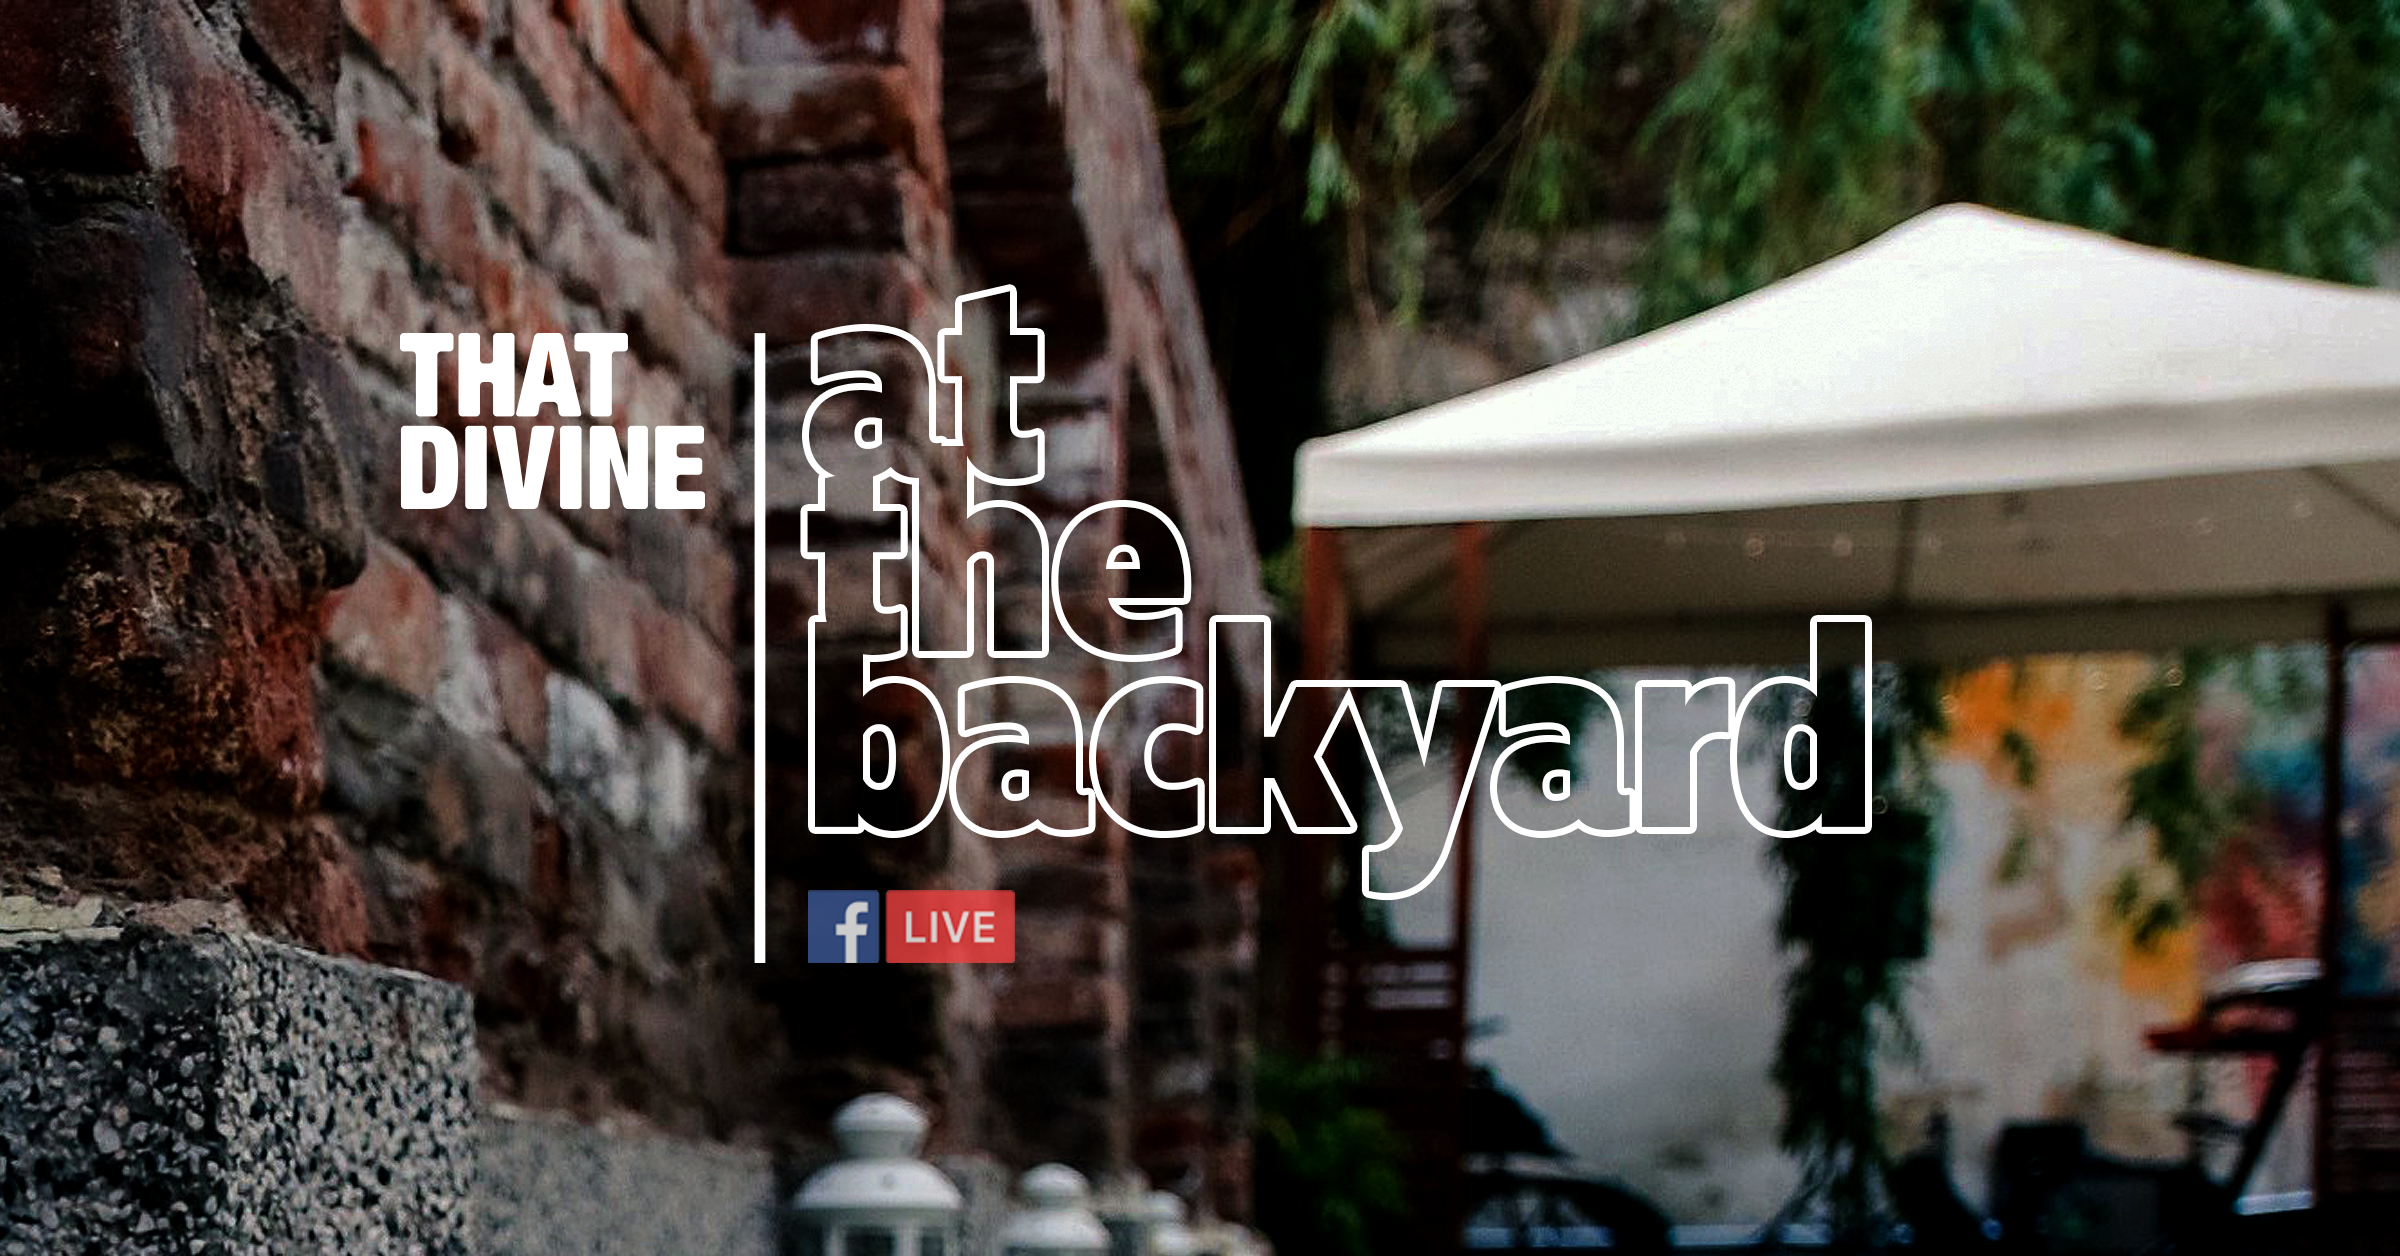 TD-@-Backyard-03-Event-Cover01.png